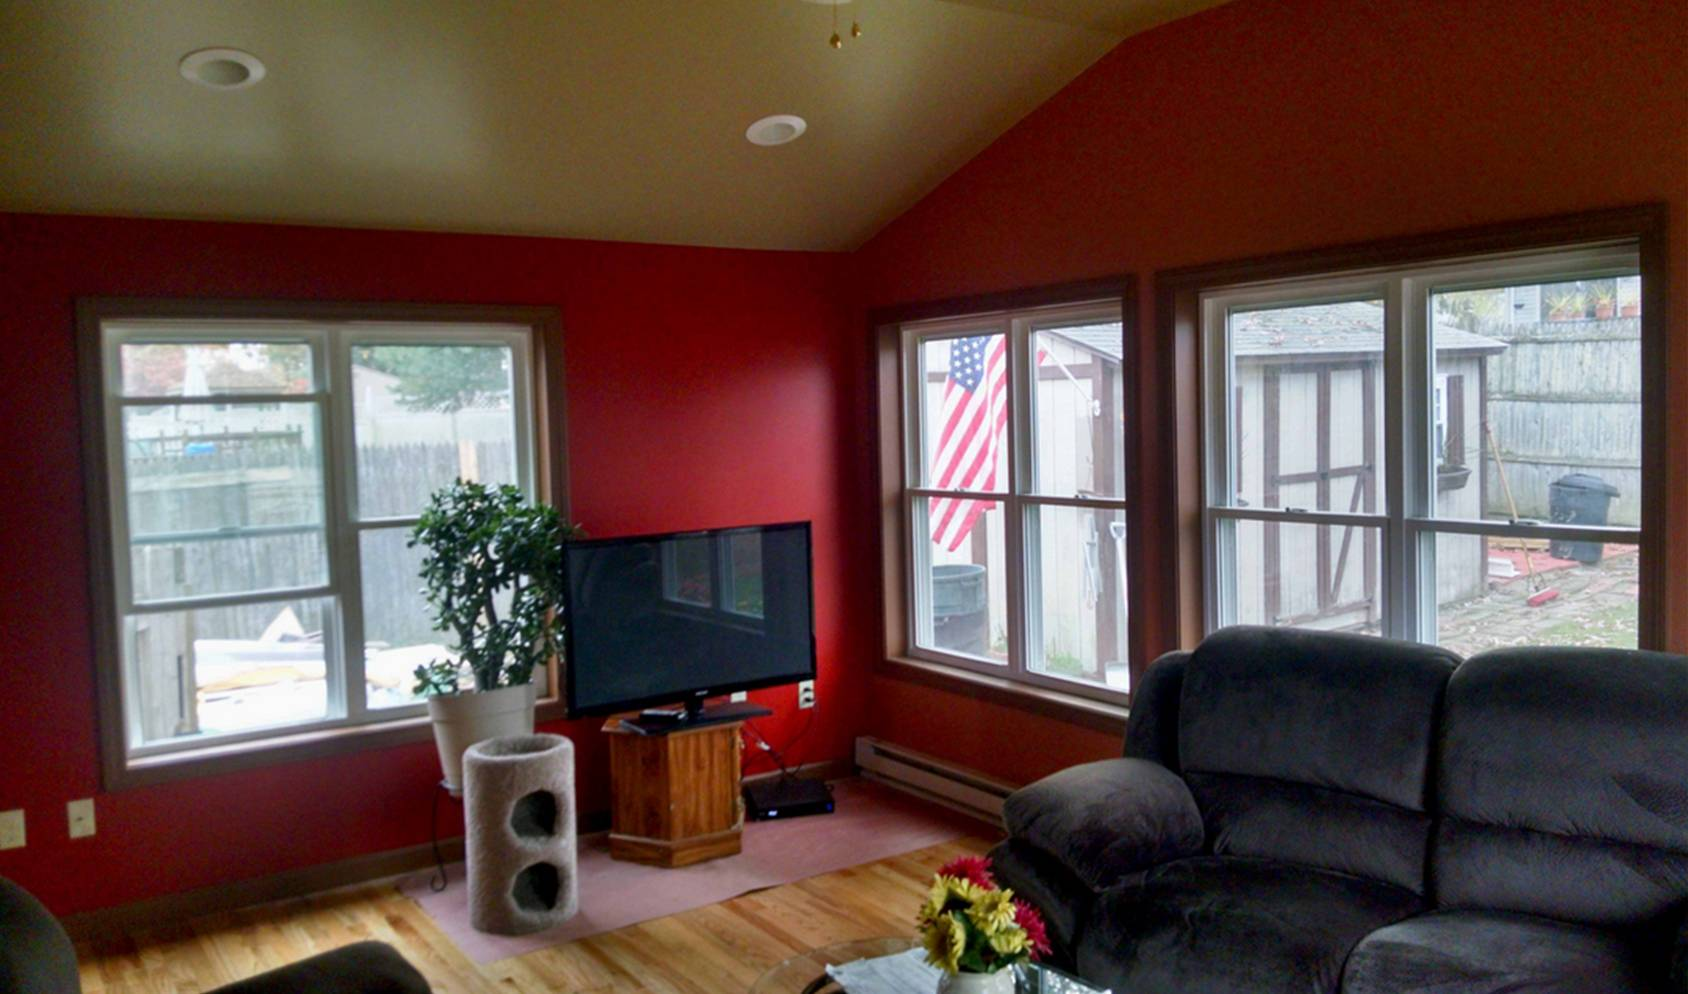 Recent remodeling projects in connecticut massachusetts for Creative renovations